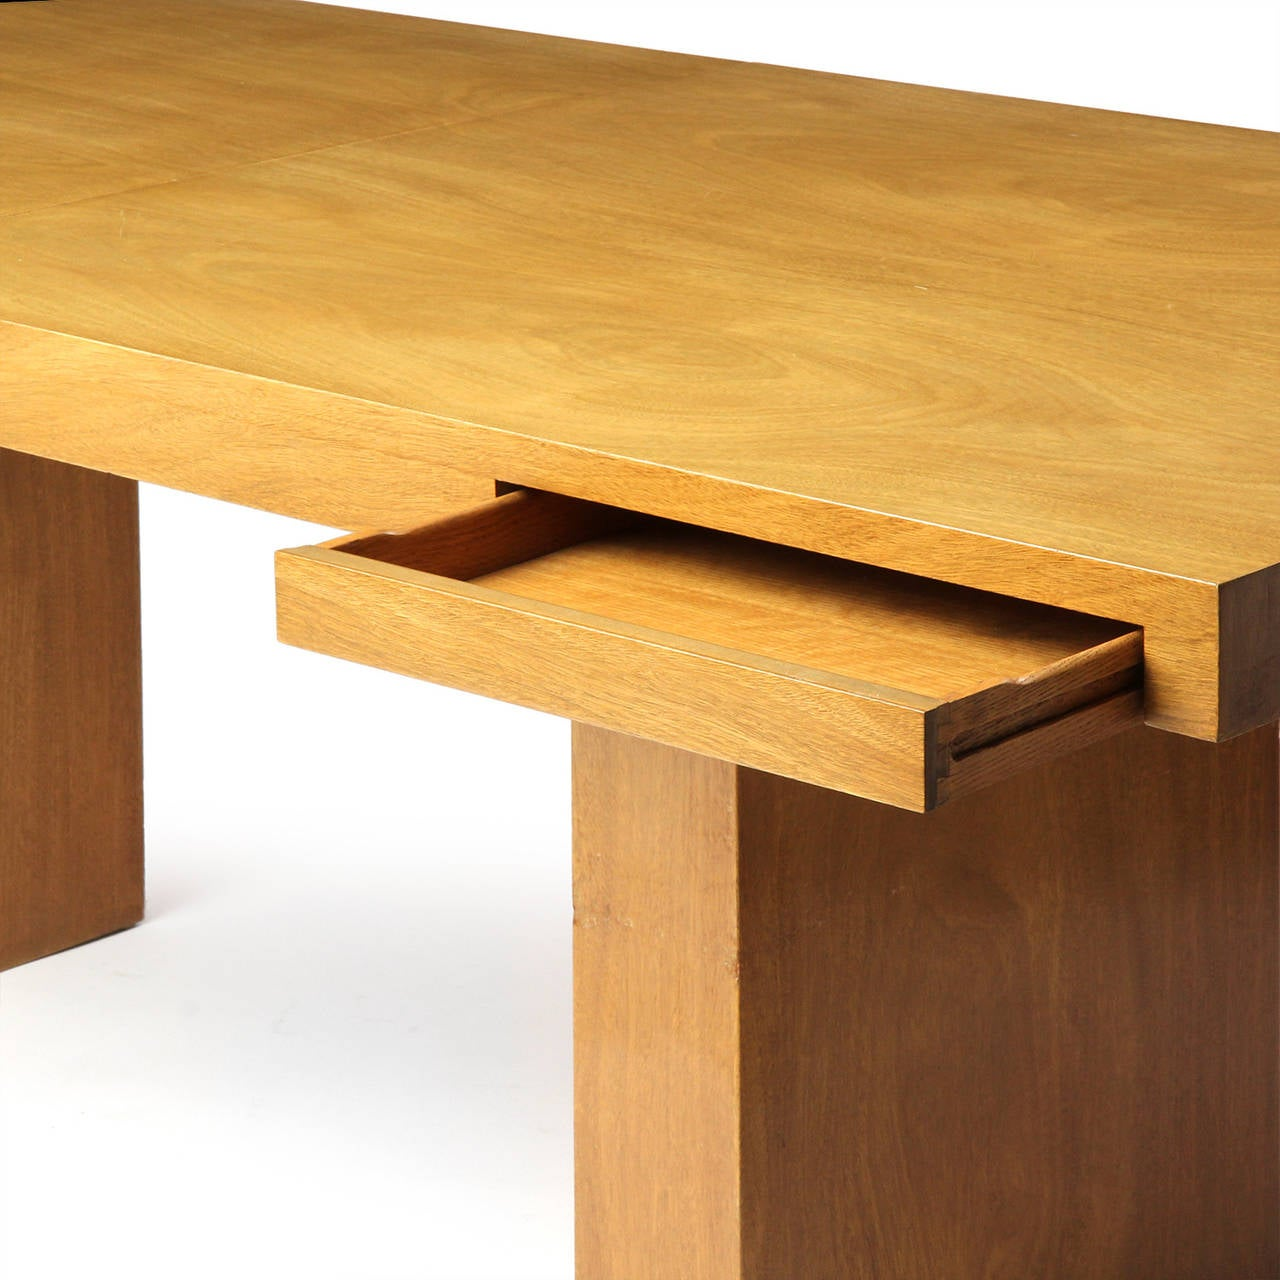 The Stylish Oak White Farringdon Desk · Https://a .1stdibscdn.com/archivesE/upload/8903/